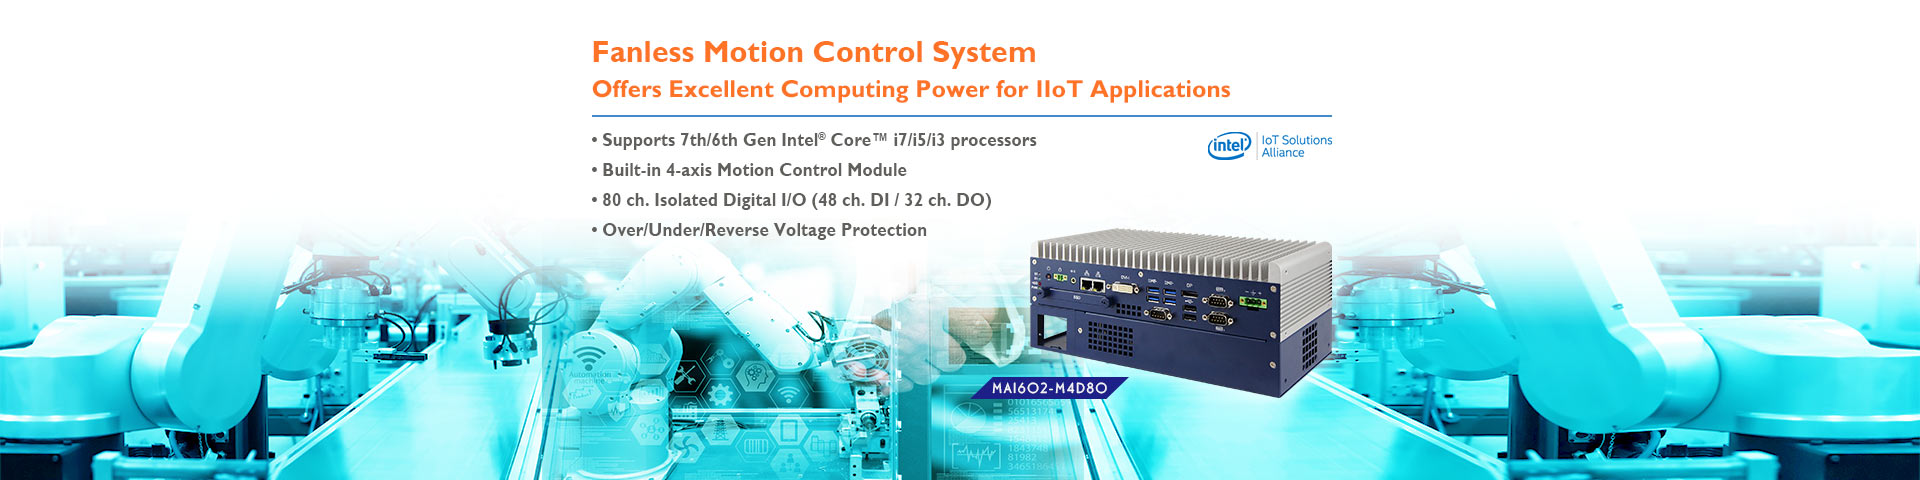 MAI602-M4D80 Fanless Motion Control System for Smart Machine Automation